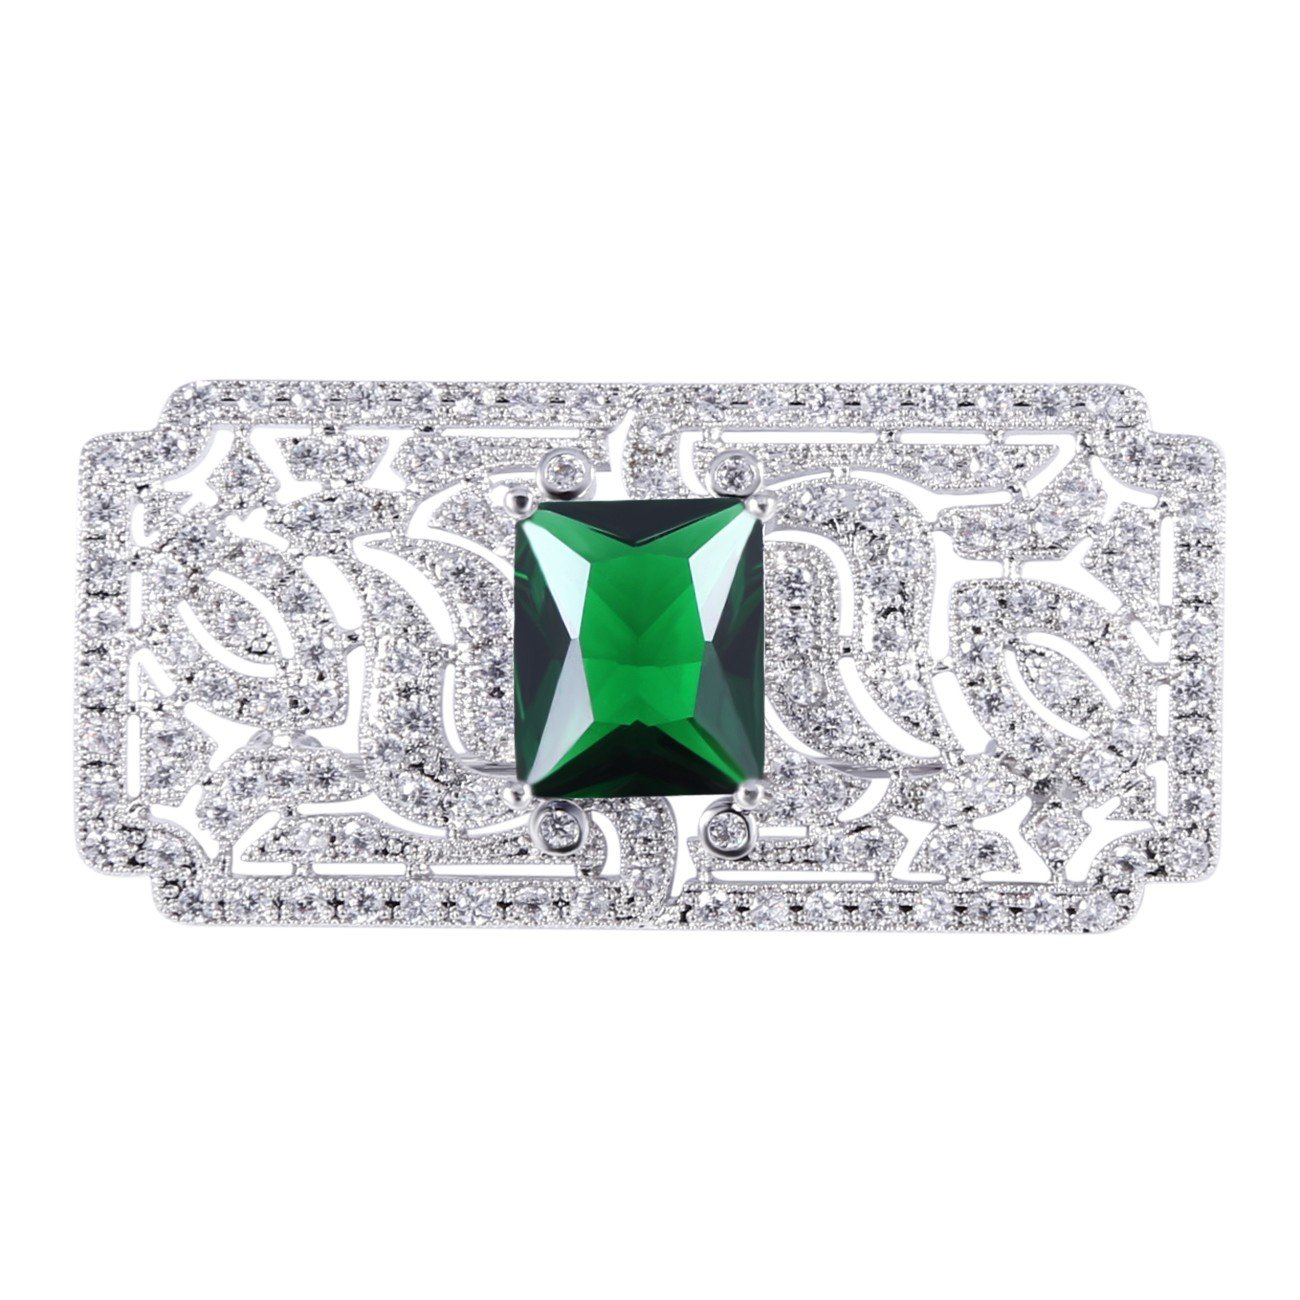 GULICX Mother's Gift Vintage Style Art Deco Zircon Wedding Brooch Pin Green Silver Plated Base Bouquet